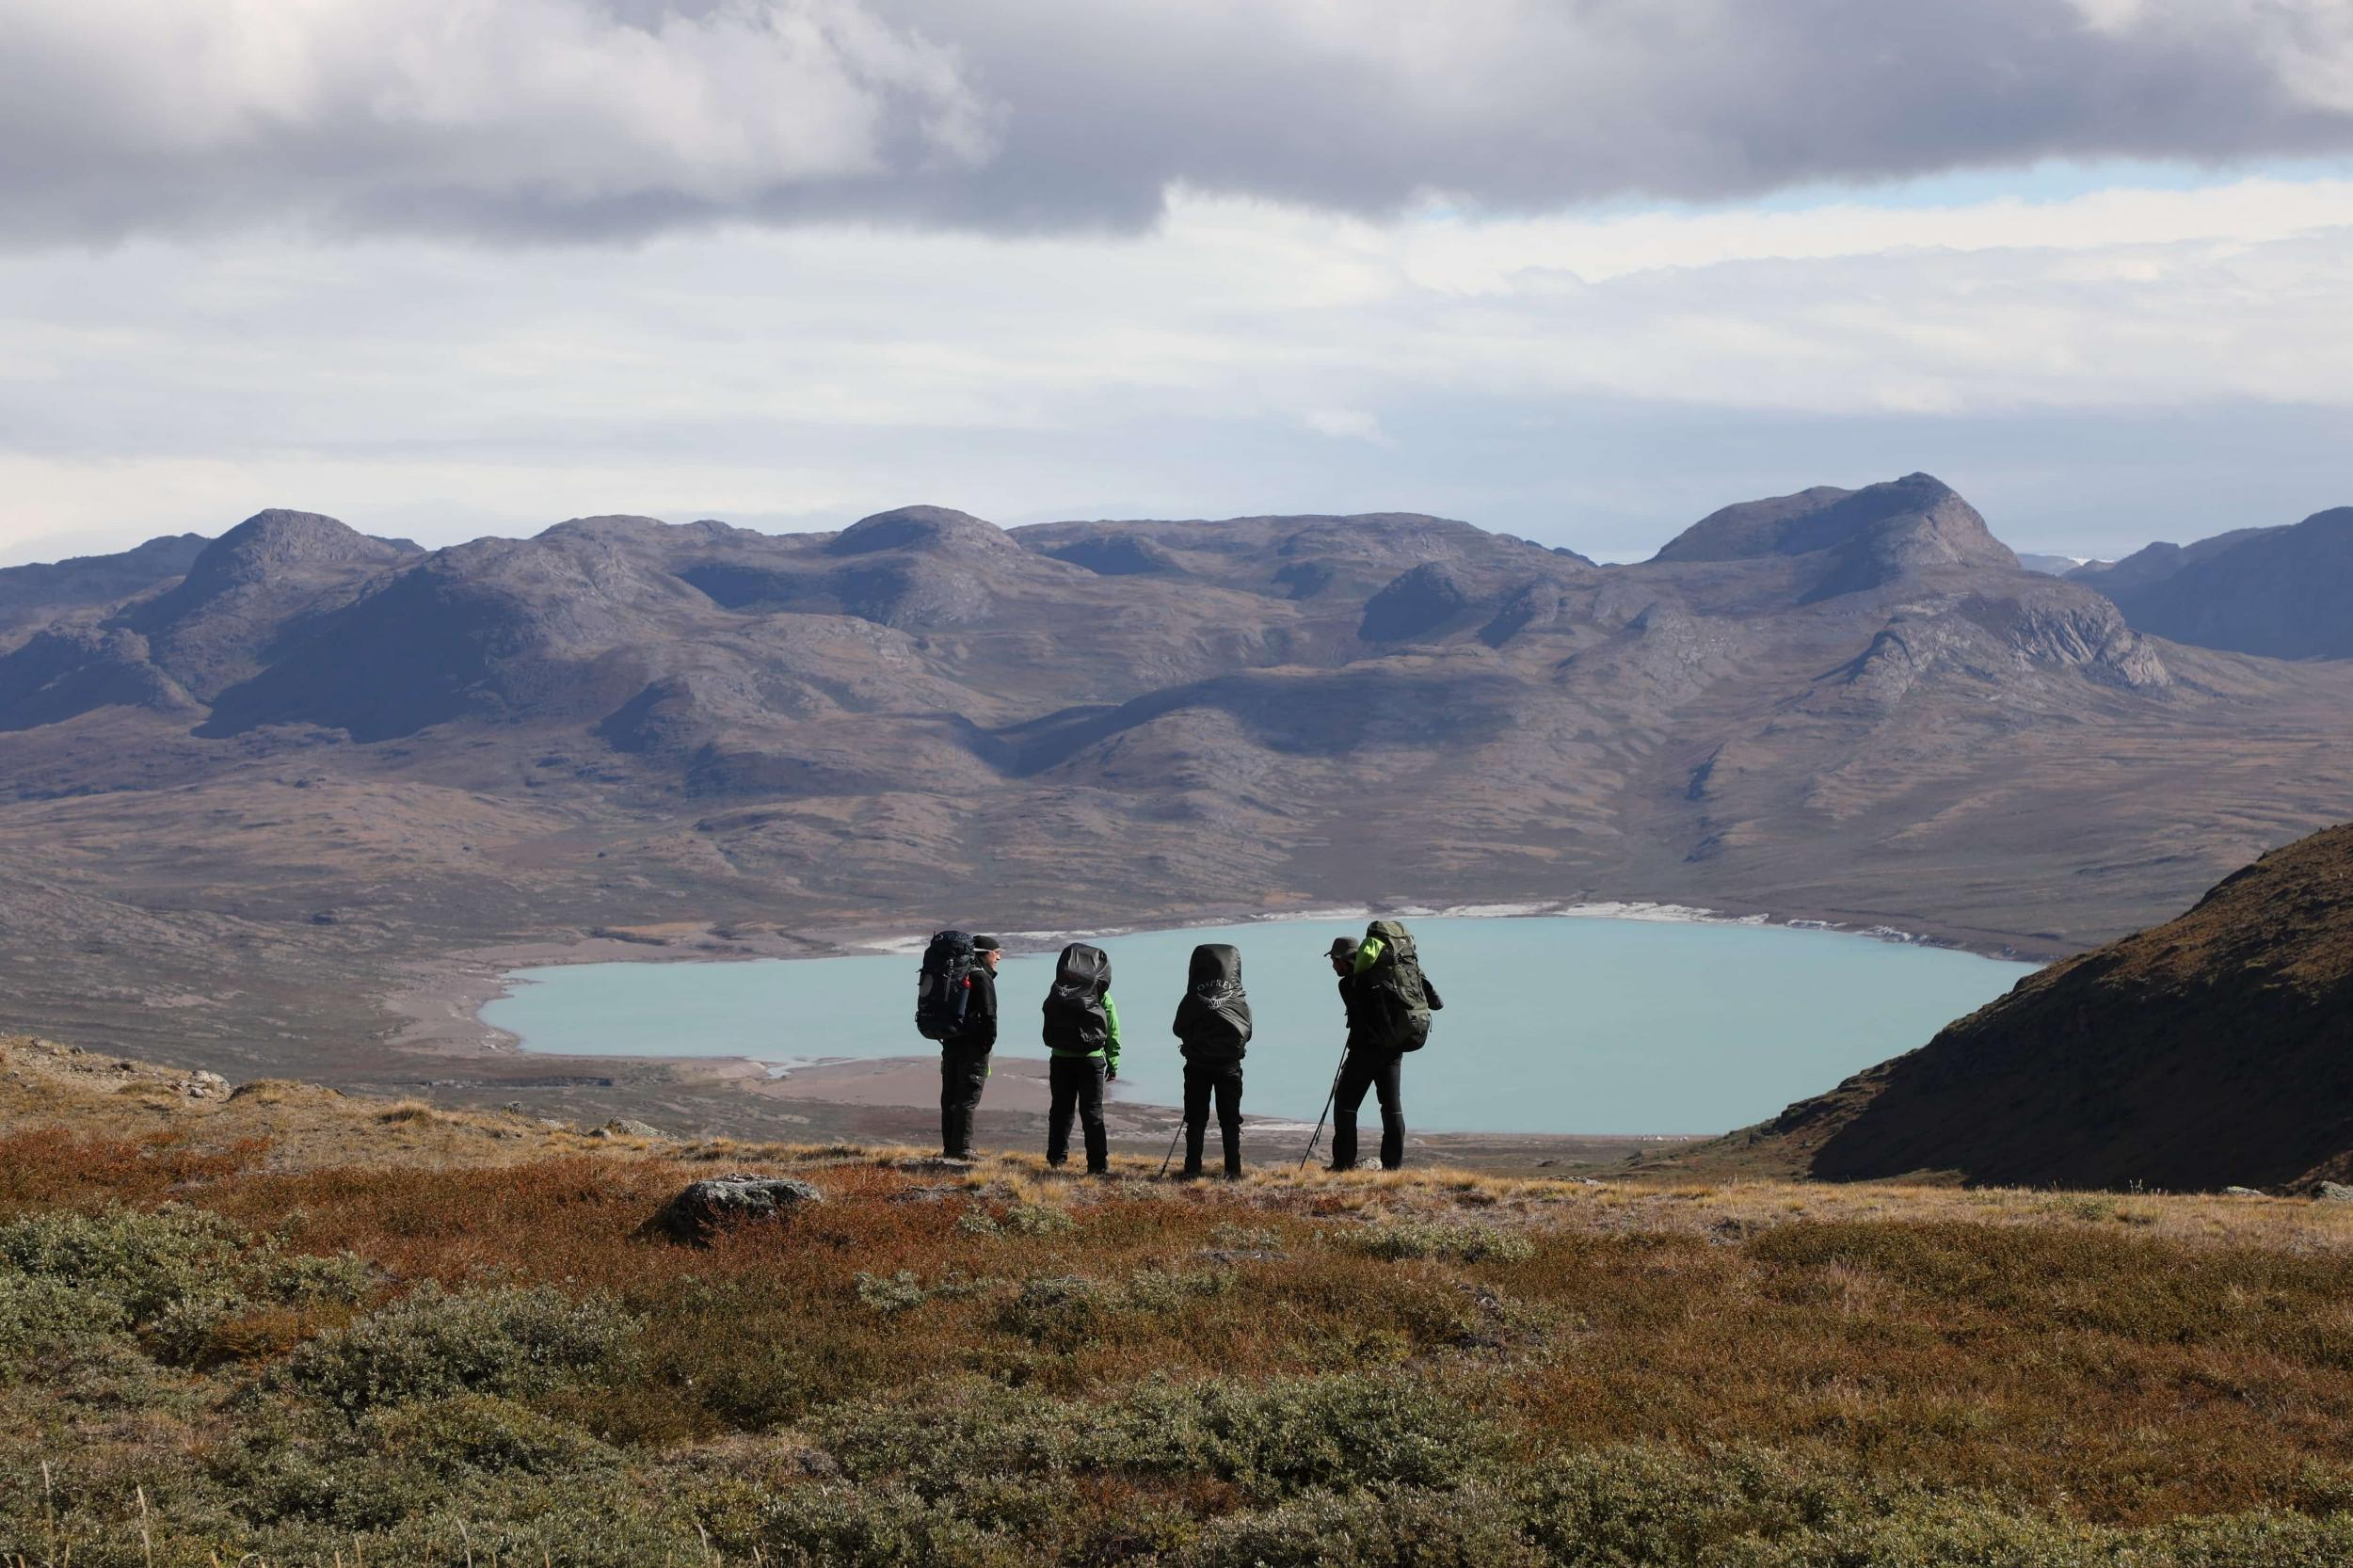 Hikers in Aasivissuit UNESCO area close to Kangerlussuaq Photo by Morten Christensen